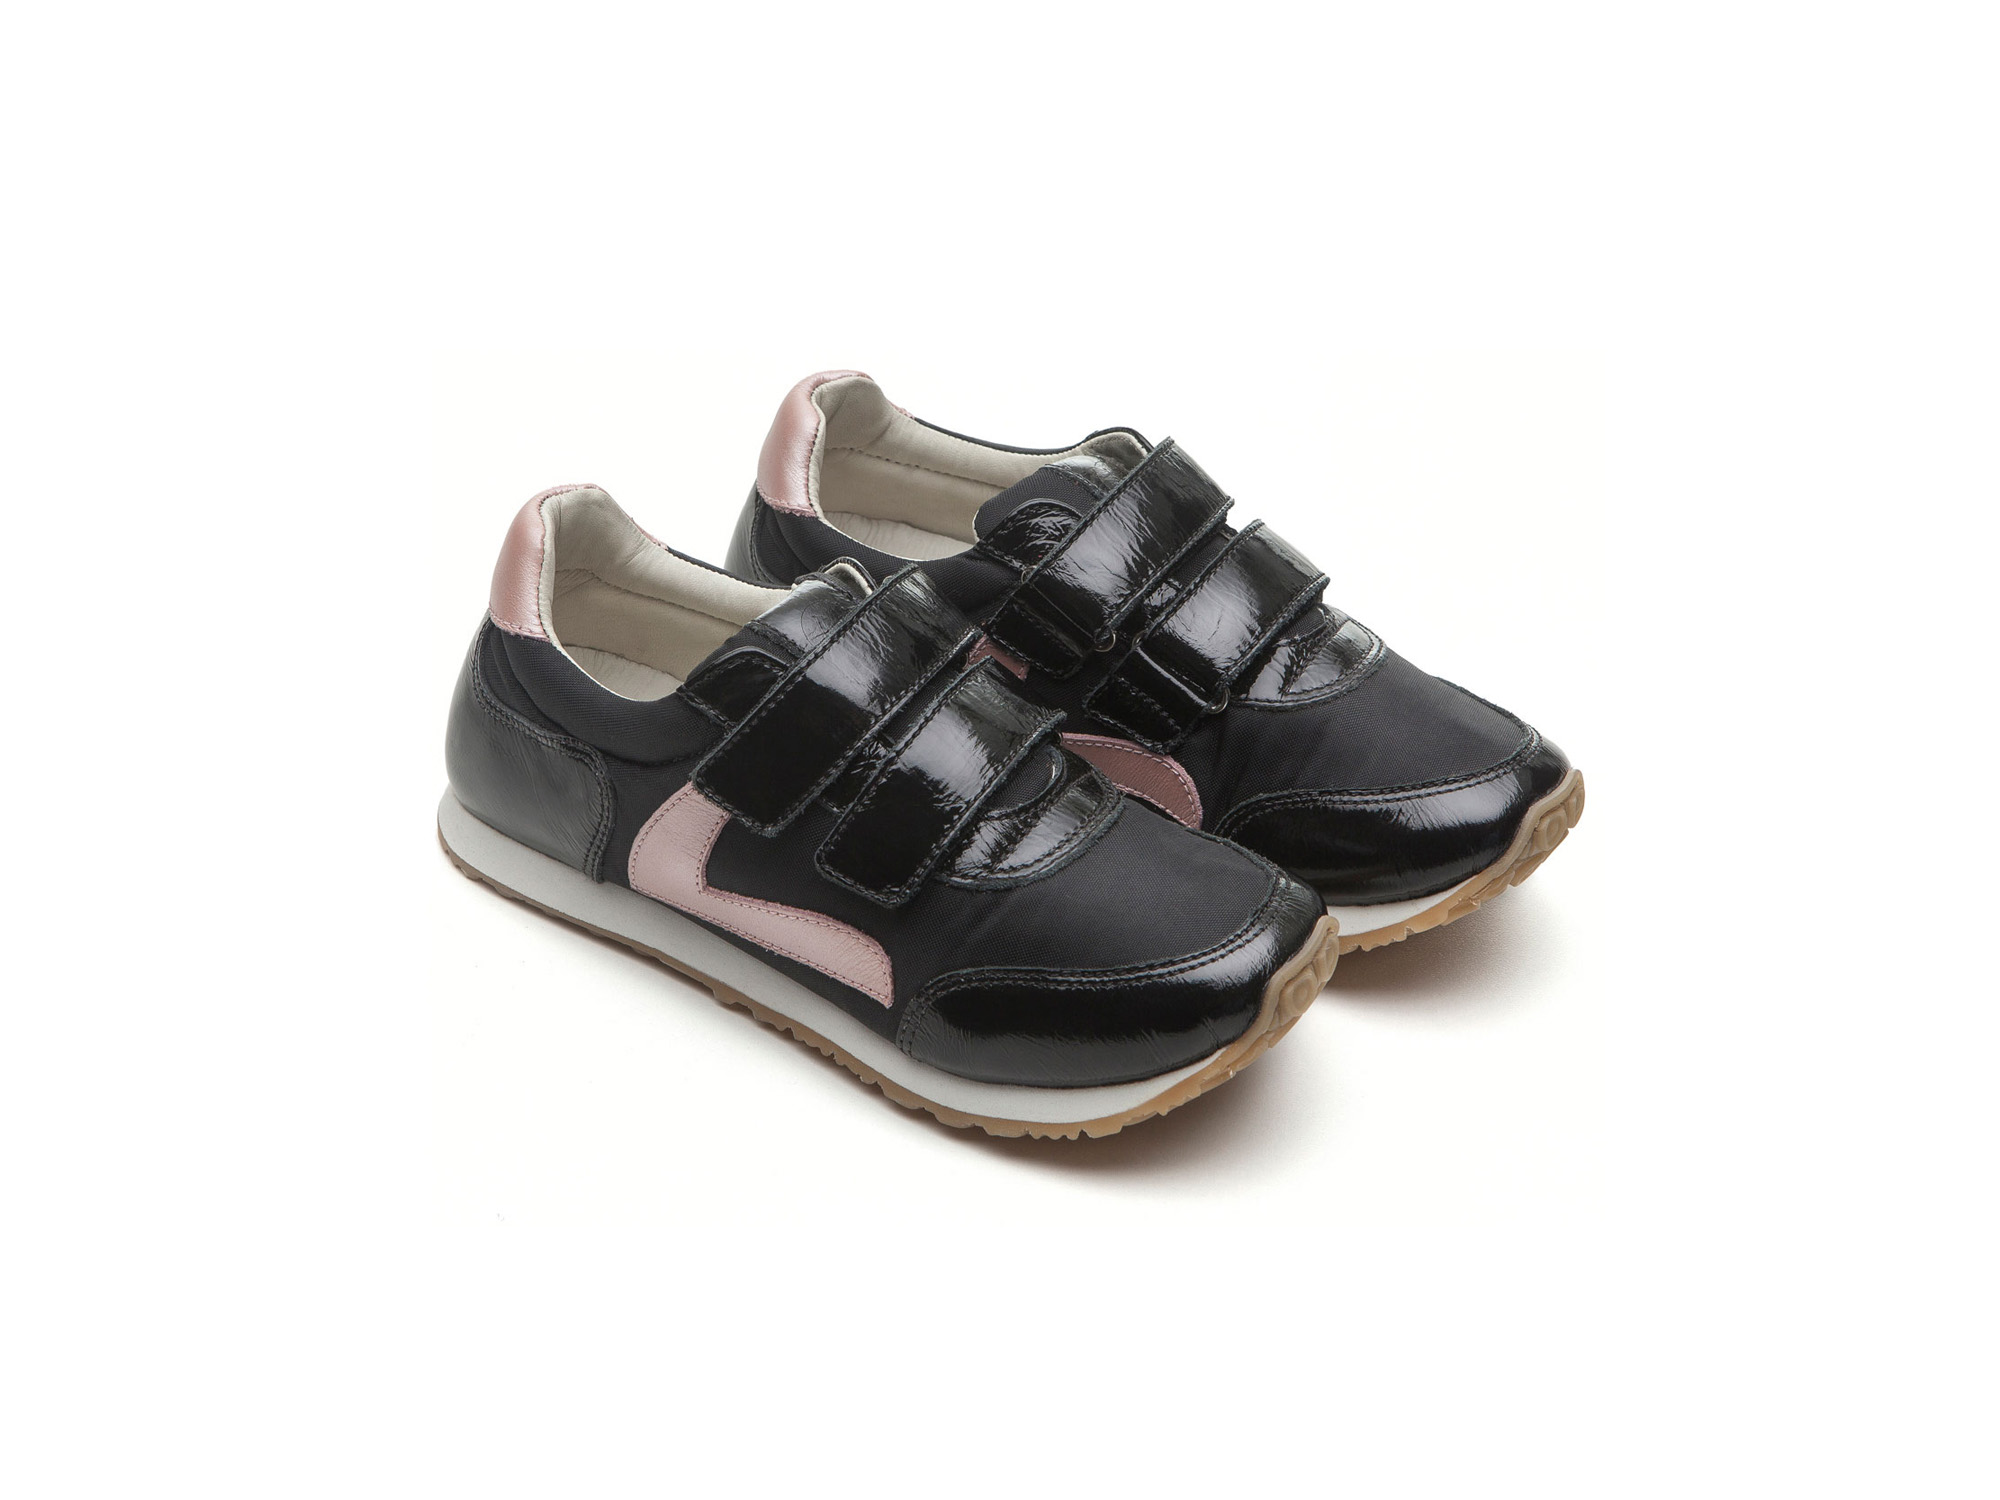 Tênis Jump Black Nylon/ Patent Black Junior 4 à 8 anos - 0